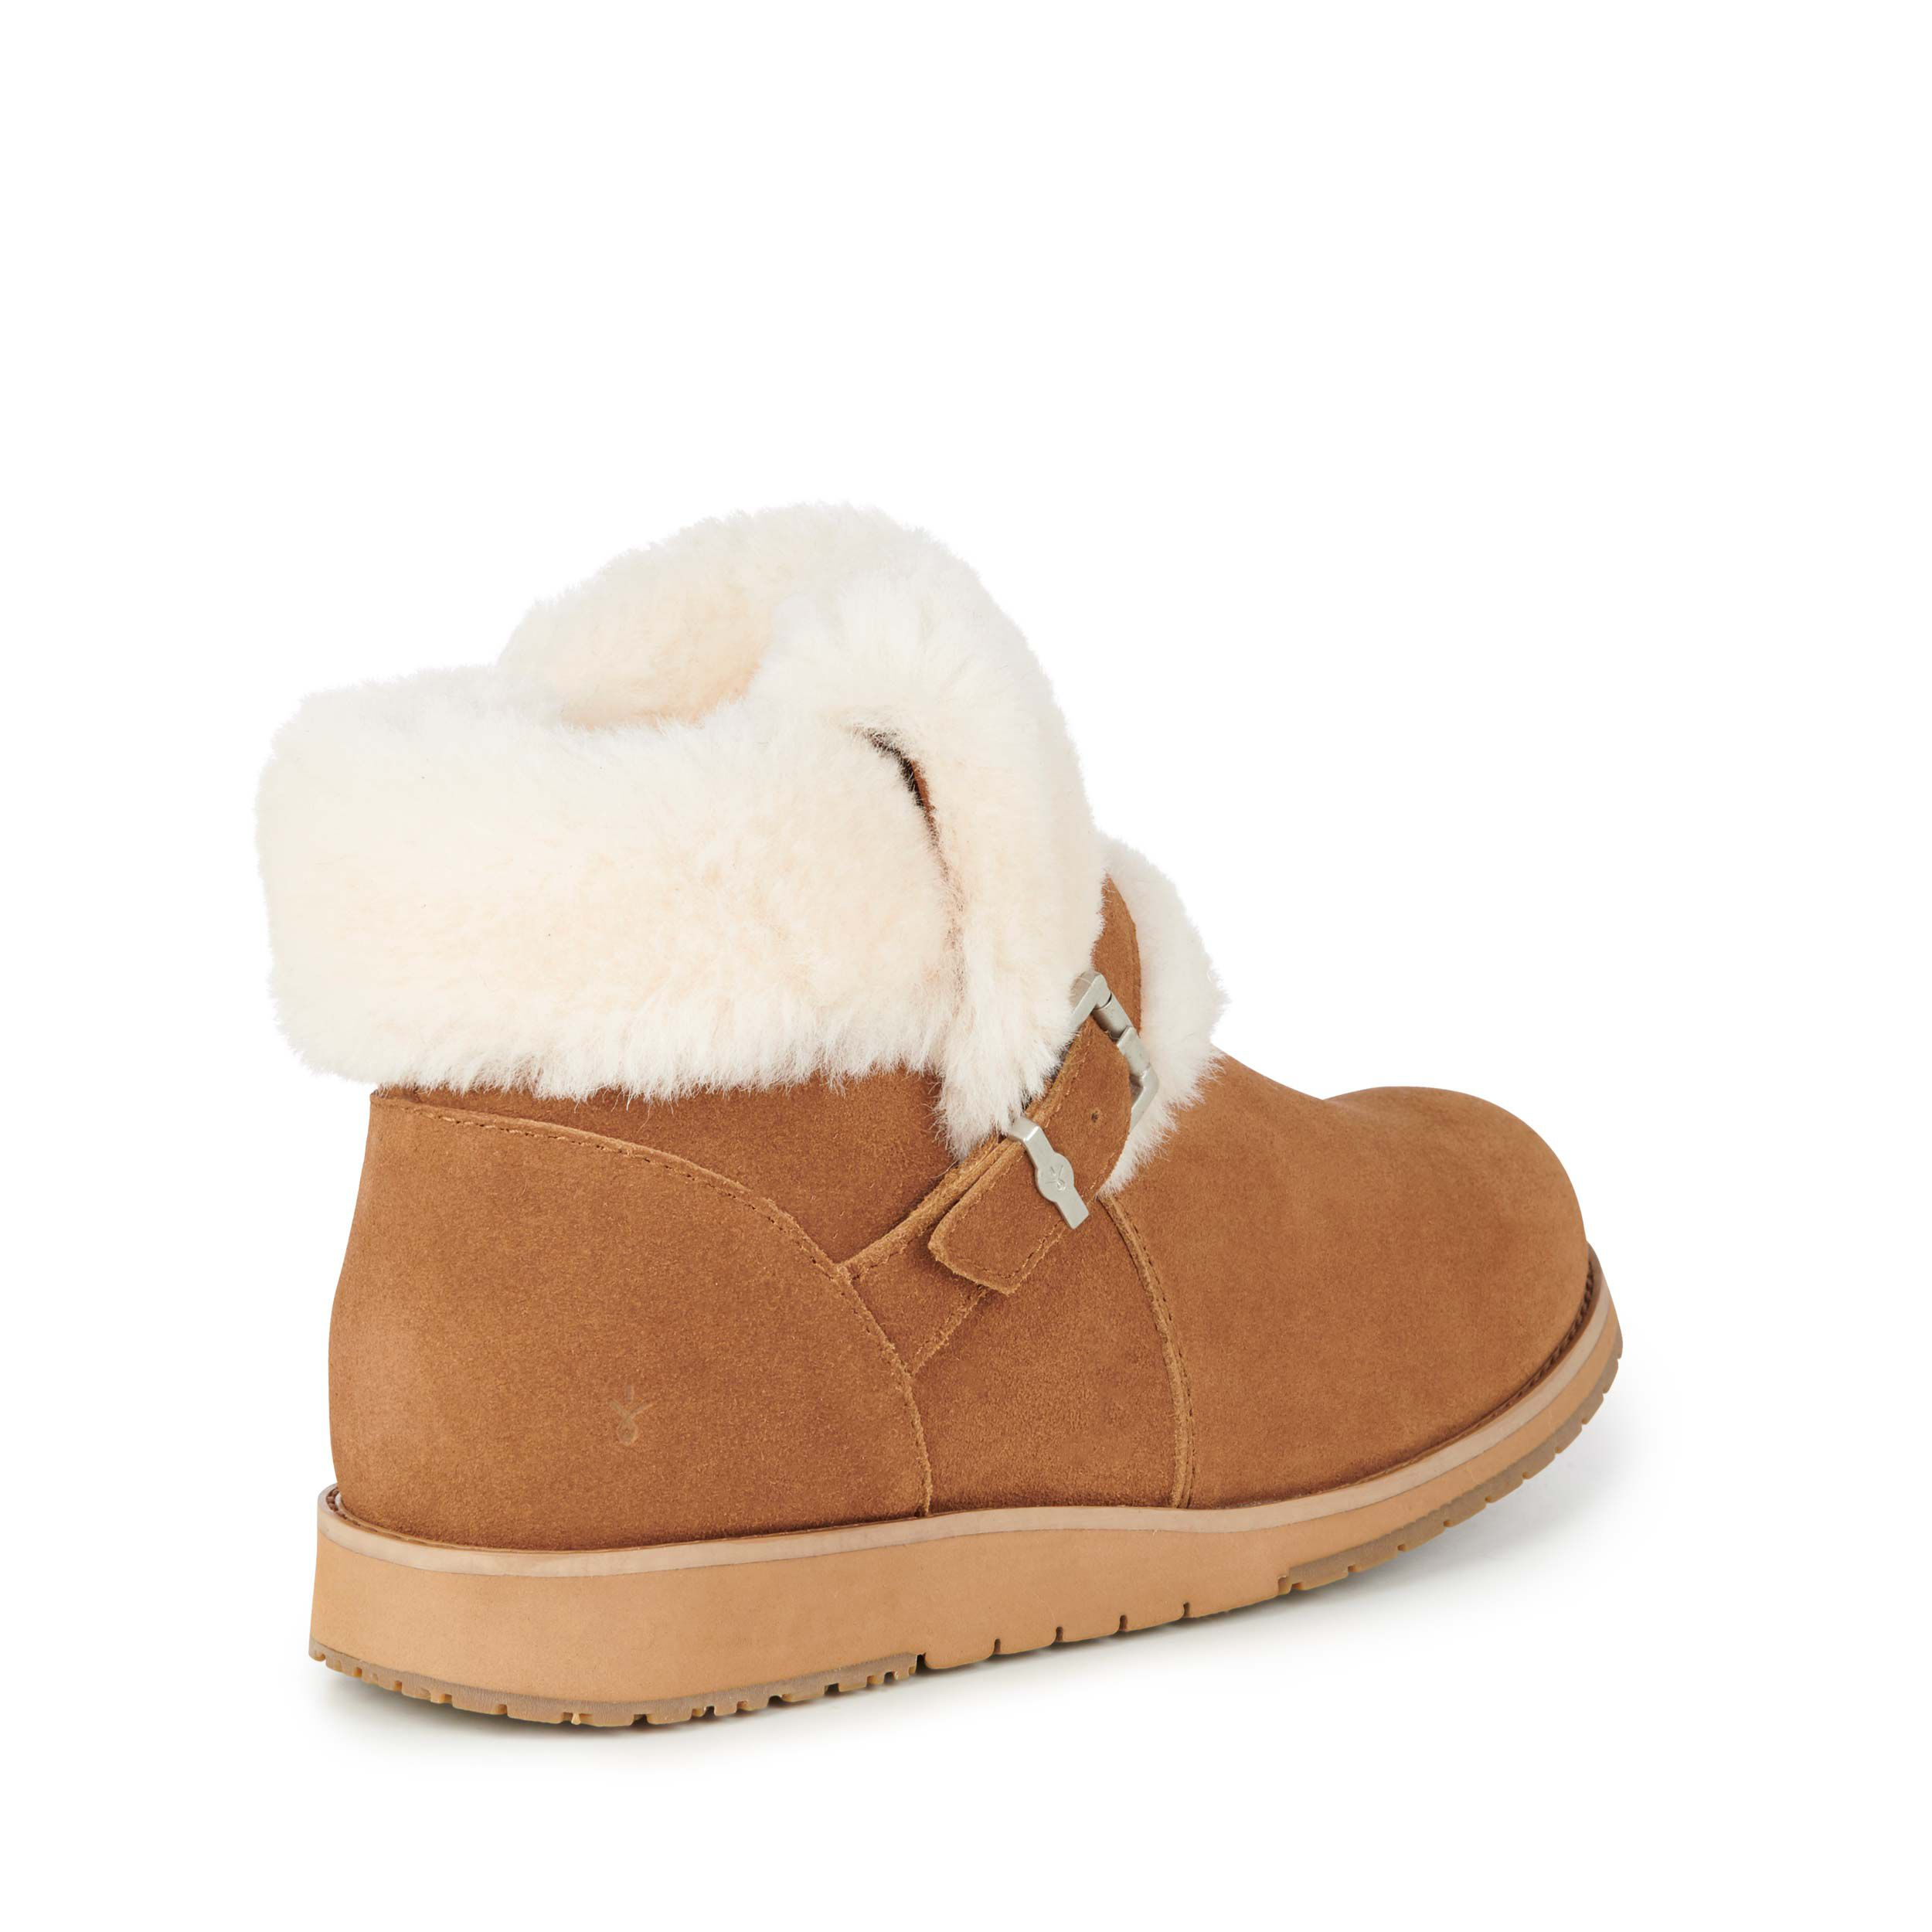 Oxley Fur Cuff Womens Deluxe Wool Boot